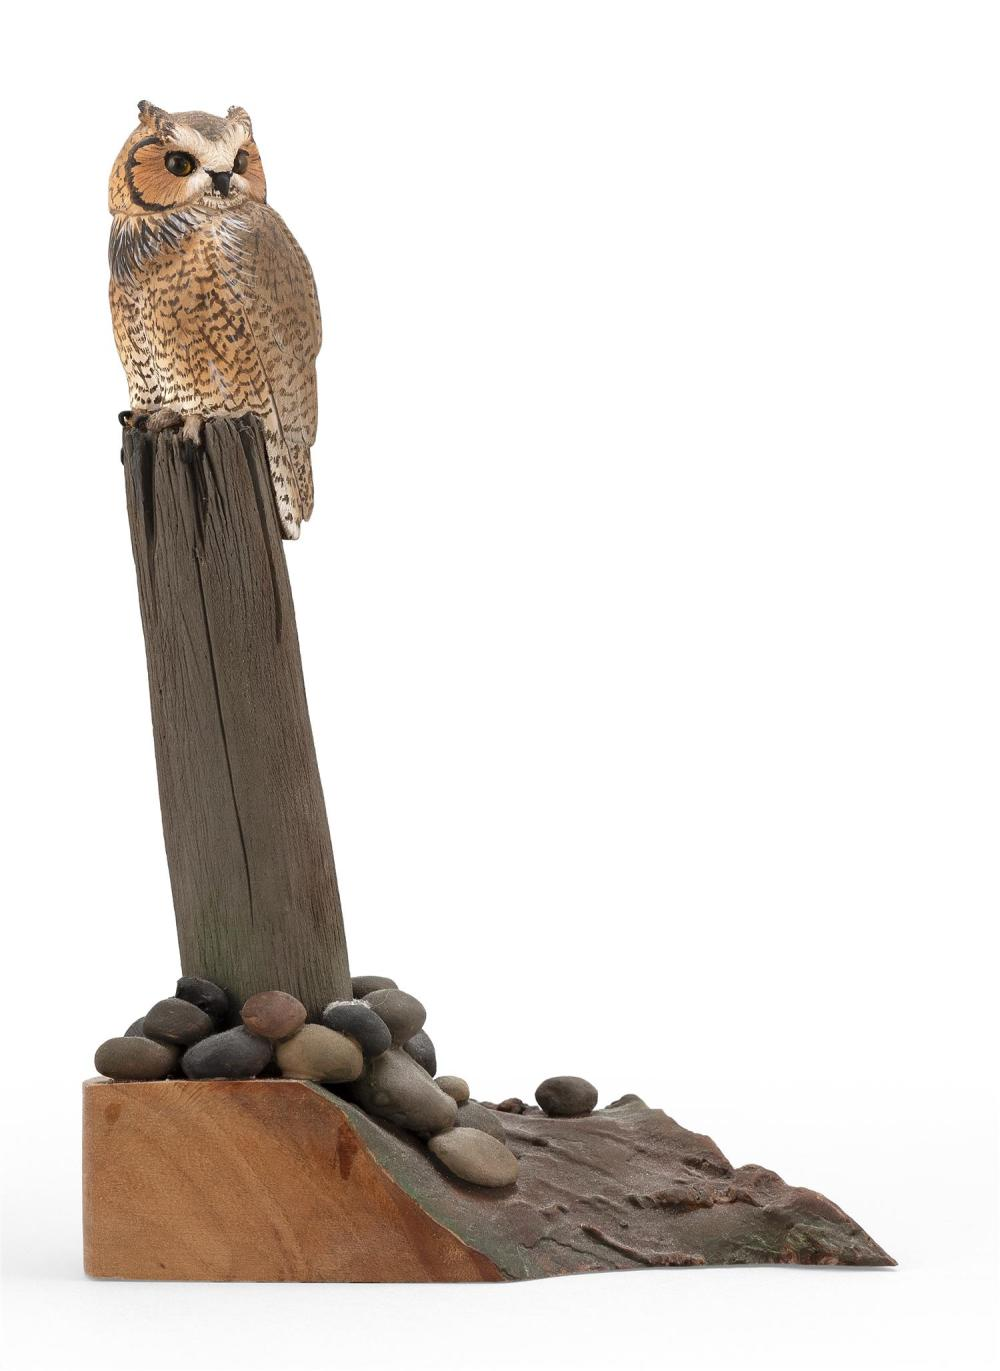 "AL JORDAN MINIATURE GREAT HORNED OWL Mounted on a wooden rockery-style base. Signed on lower right of base ""A Jordan"". Height 7""."